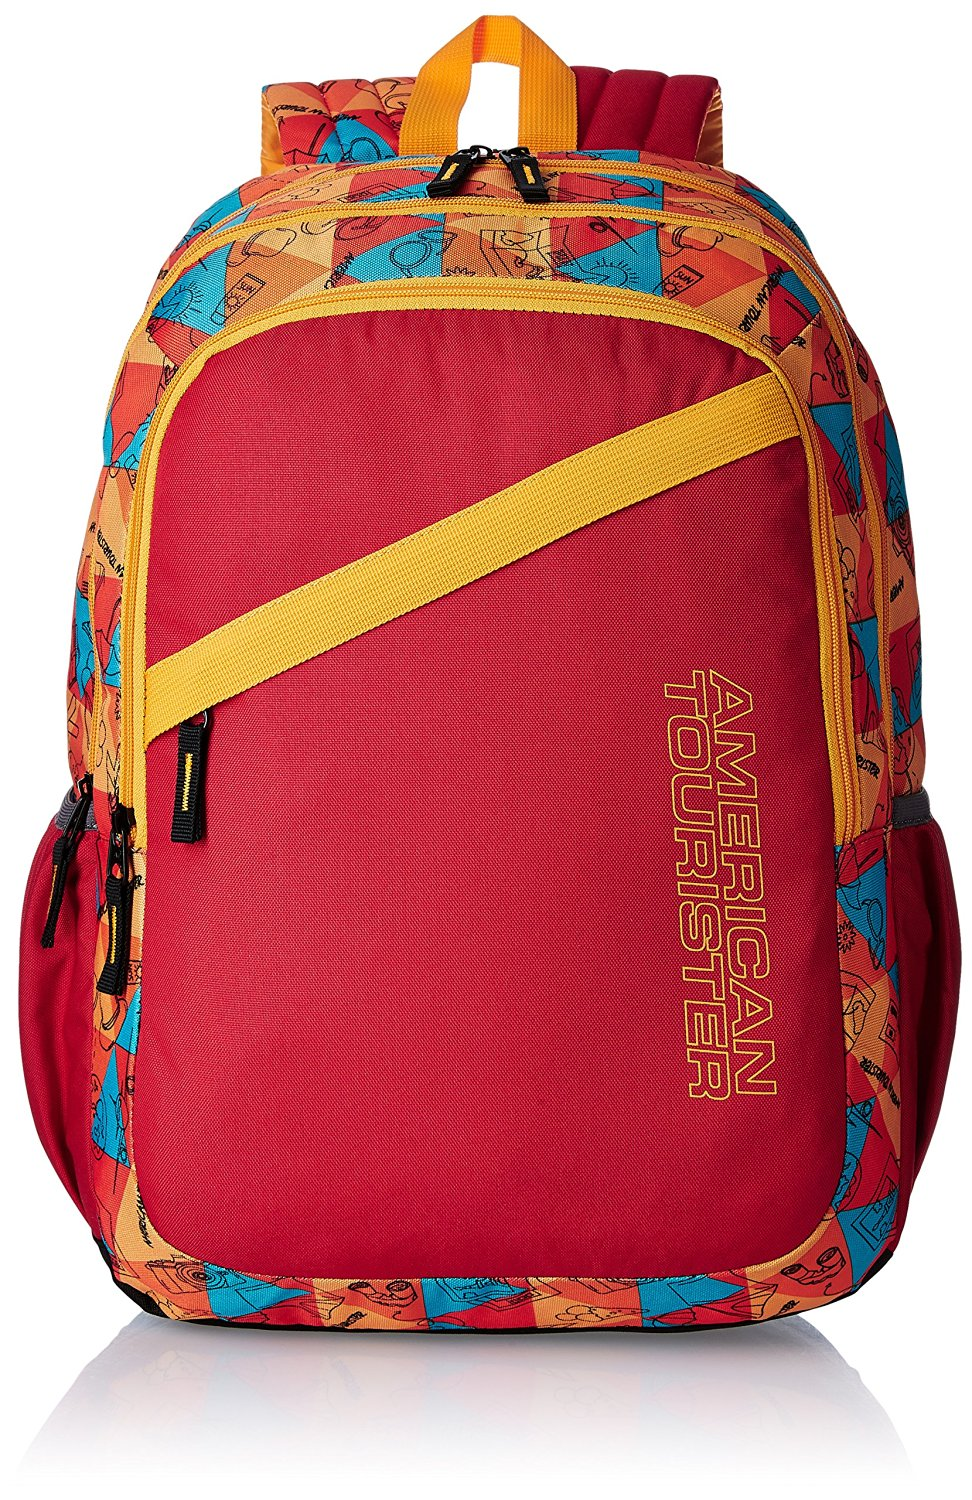 American Tourister Hashtag Casual Backpack low price